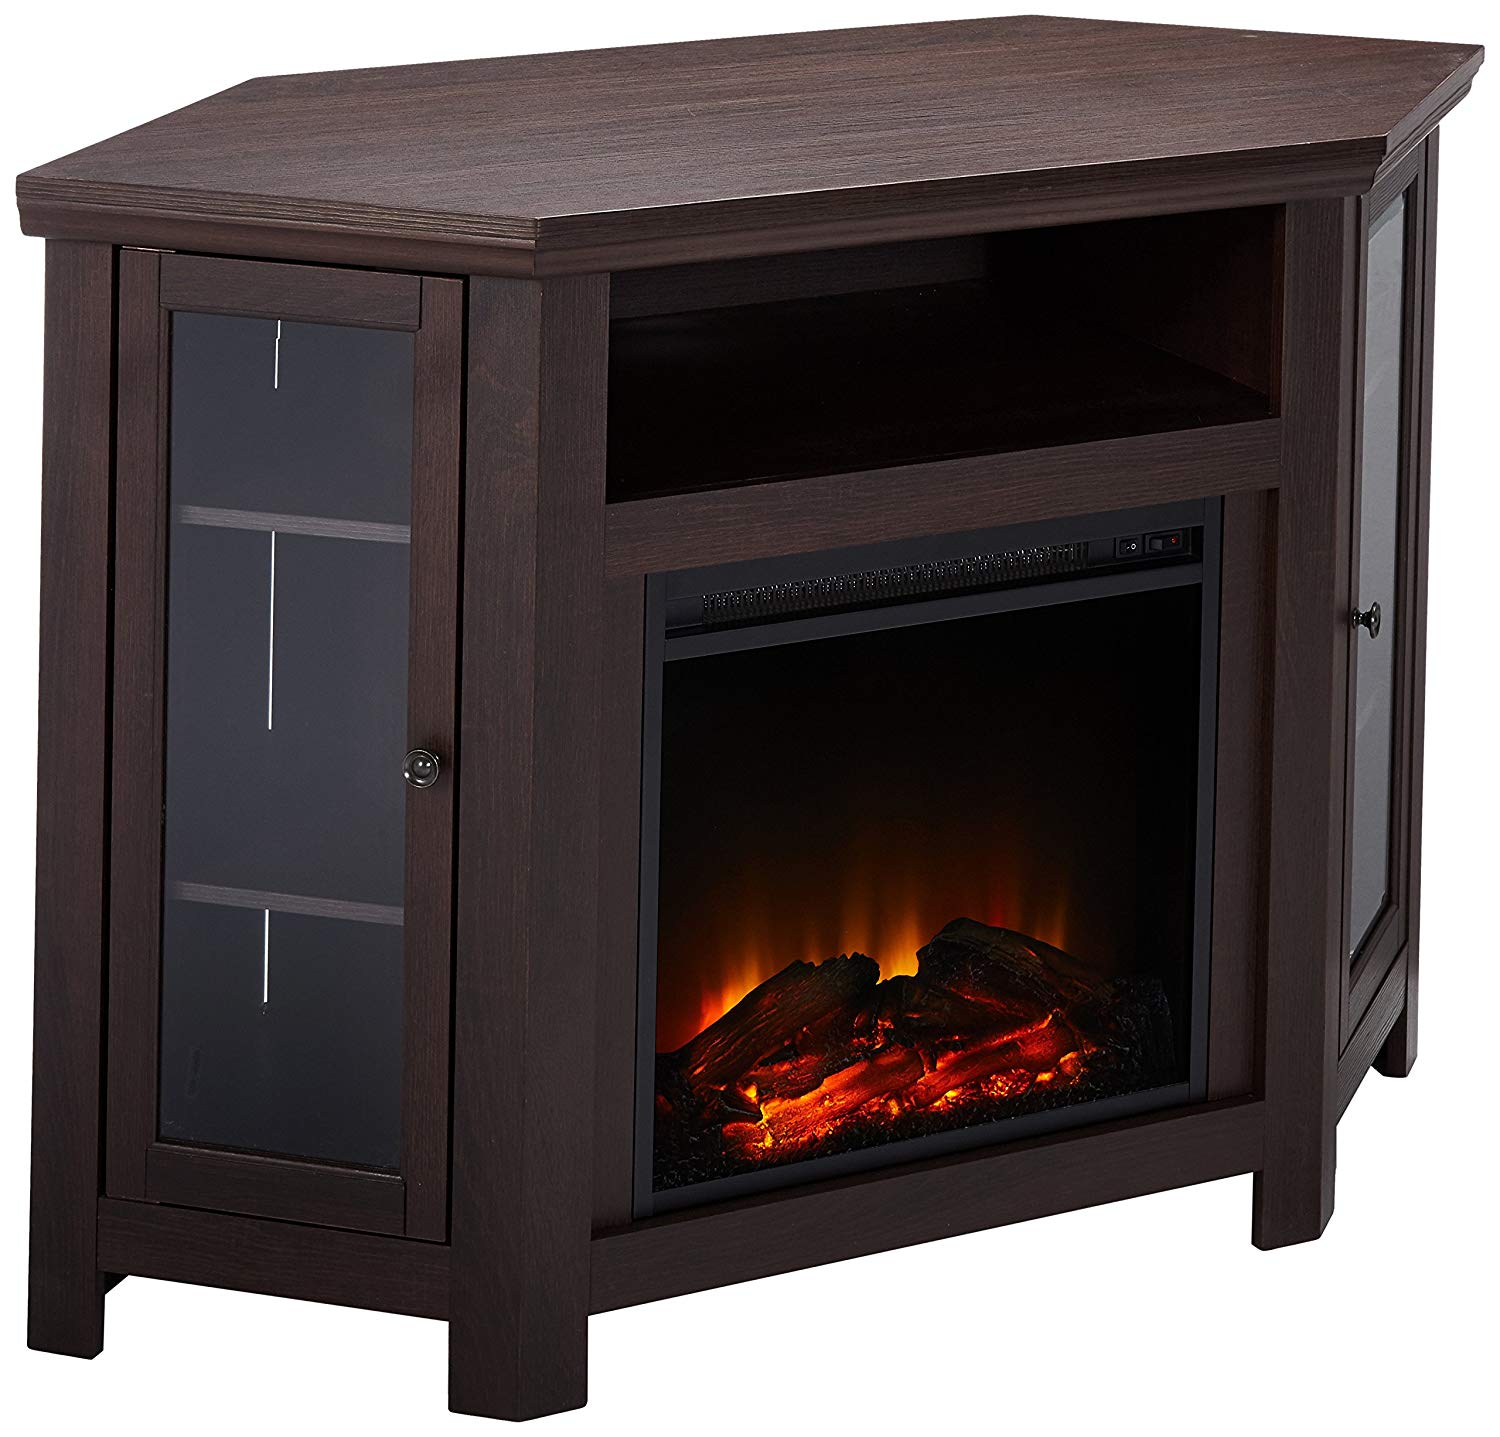 "WE Furniture 48"" Corner TV Stand Fireplace Console, Espresso"